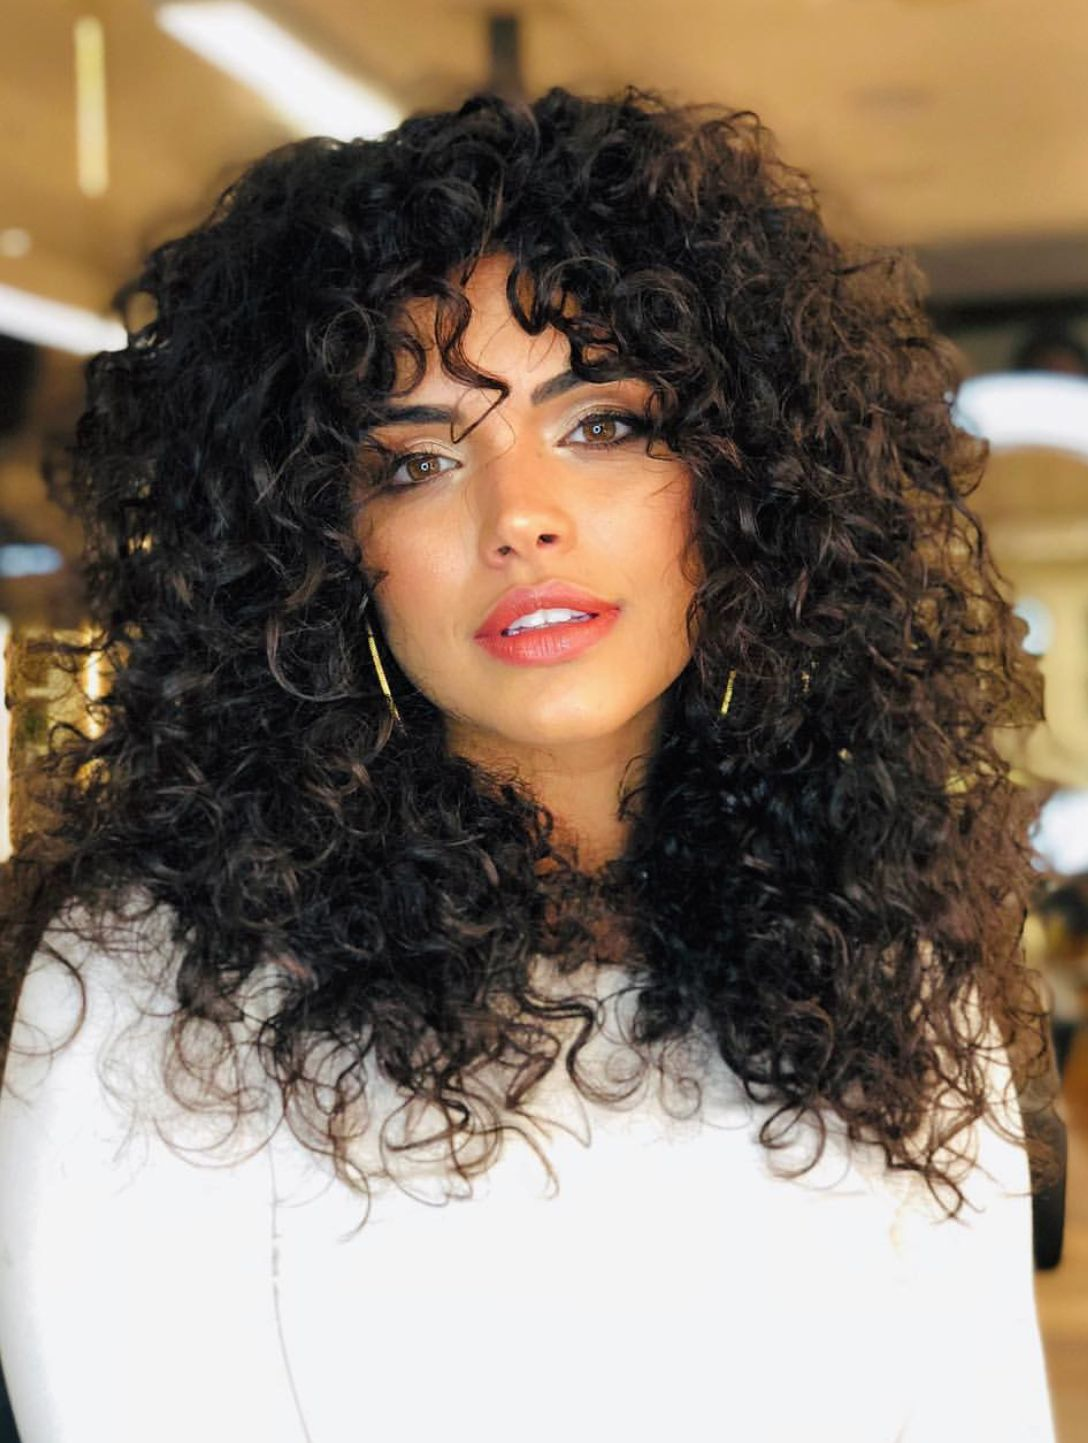 Natural Curly Hair With Layers Haircut Hair Style So Beautiful And Voluminous Curls Curly Natural Curls Hairstyles Curly Natural Curls Curly Hair Styles